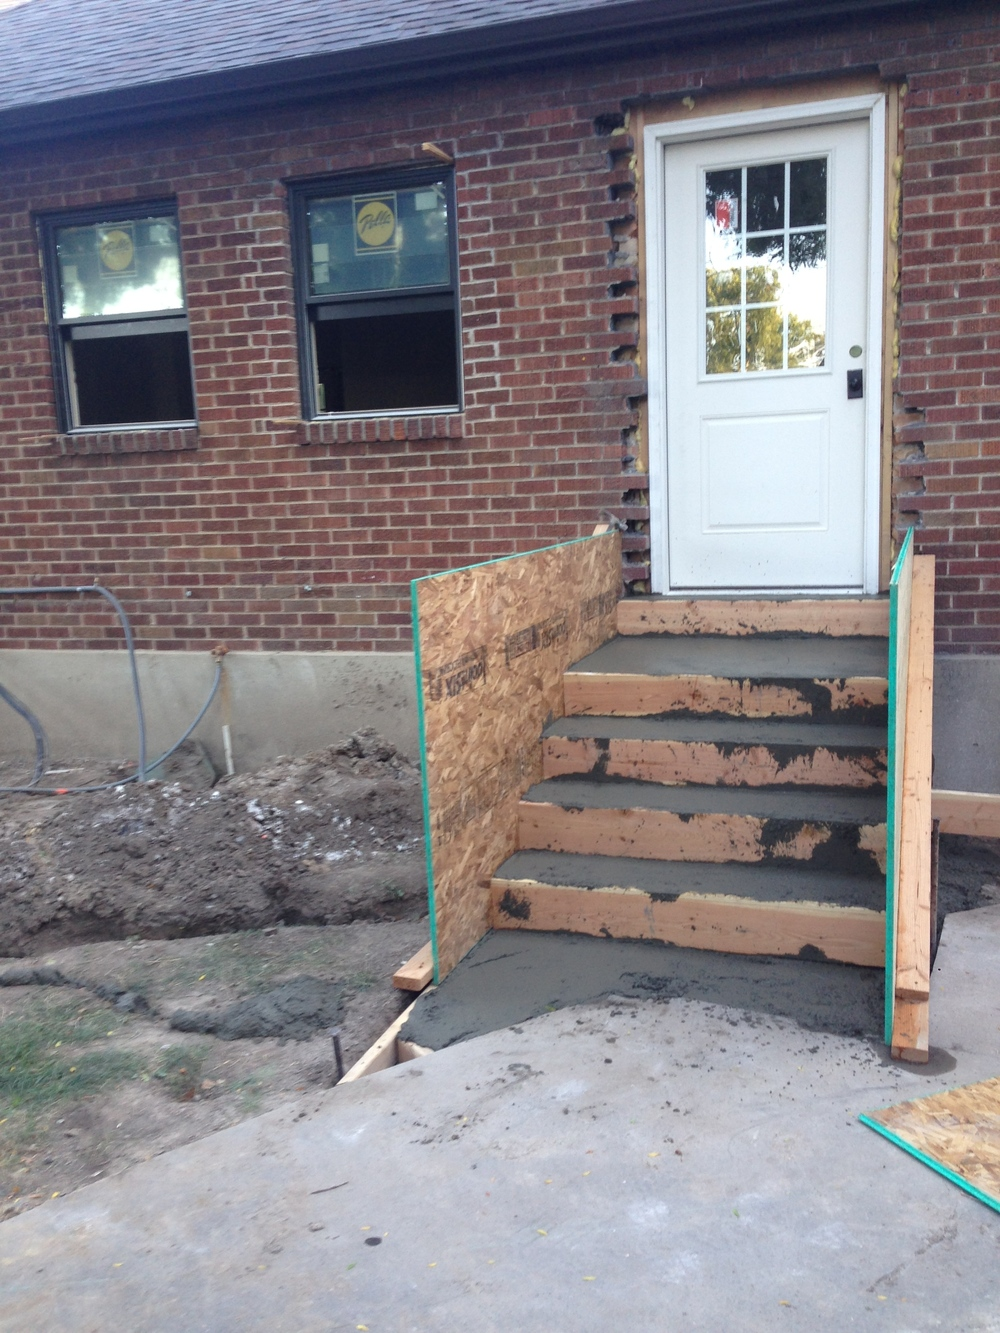 When I relocated my internal stairway, I also moved the entrance from the side to the back